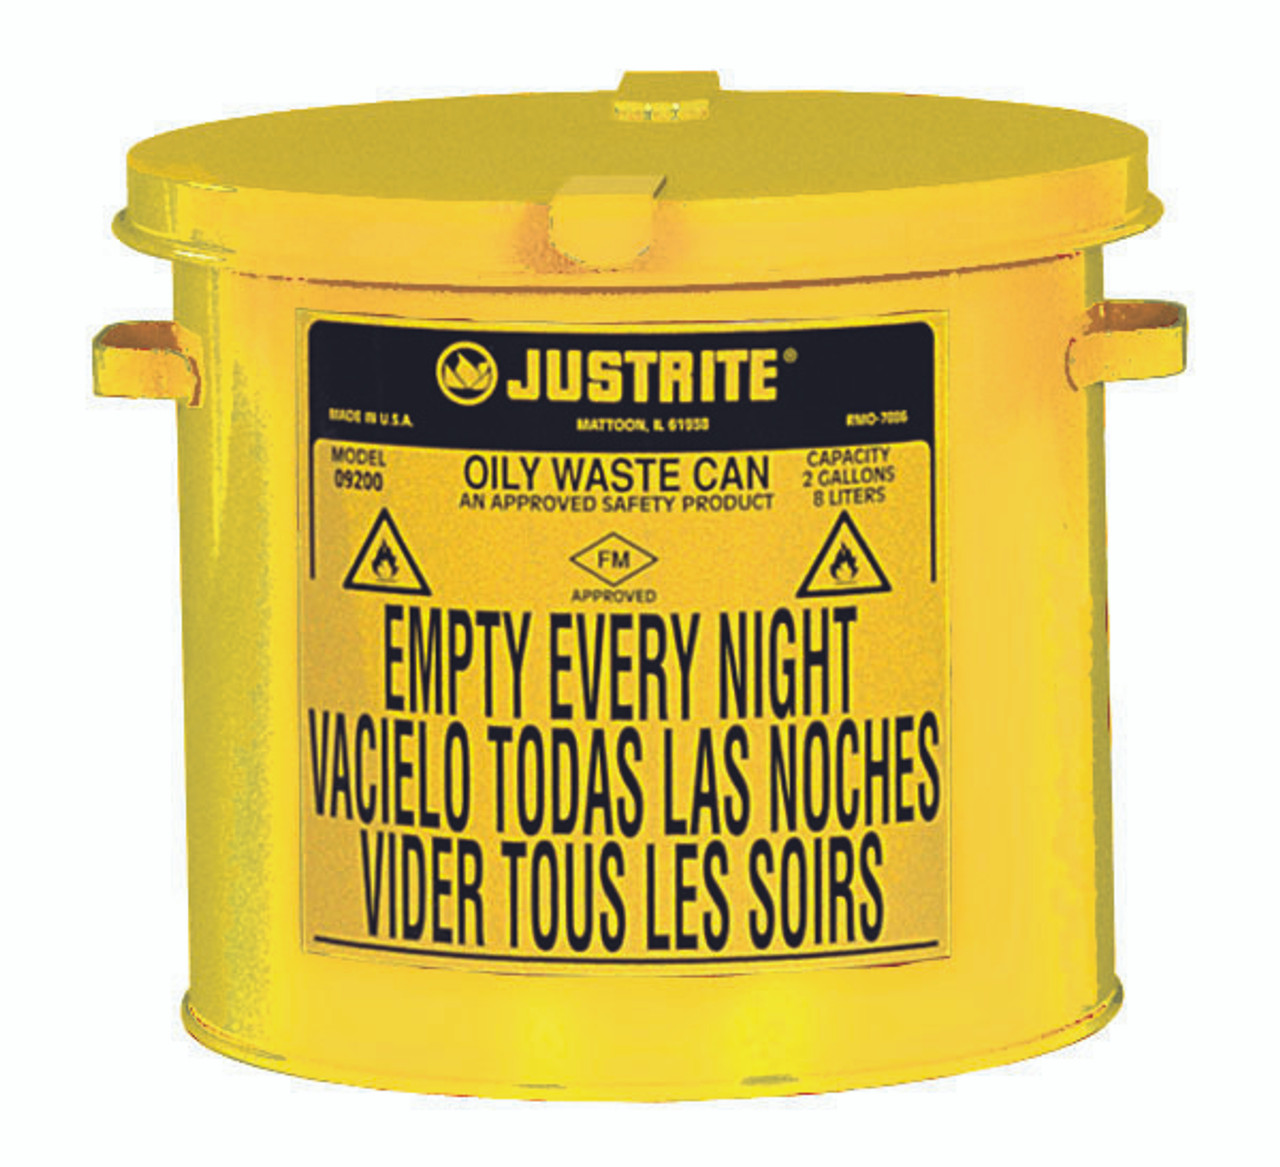 Justrite Countertop Oily Waste Cans